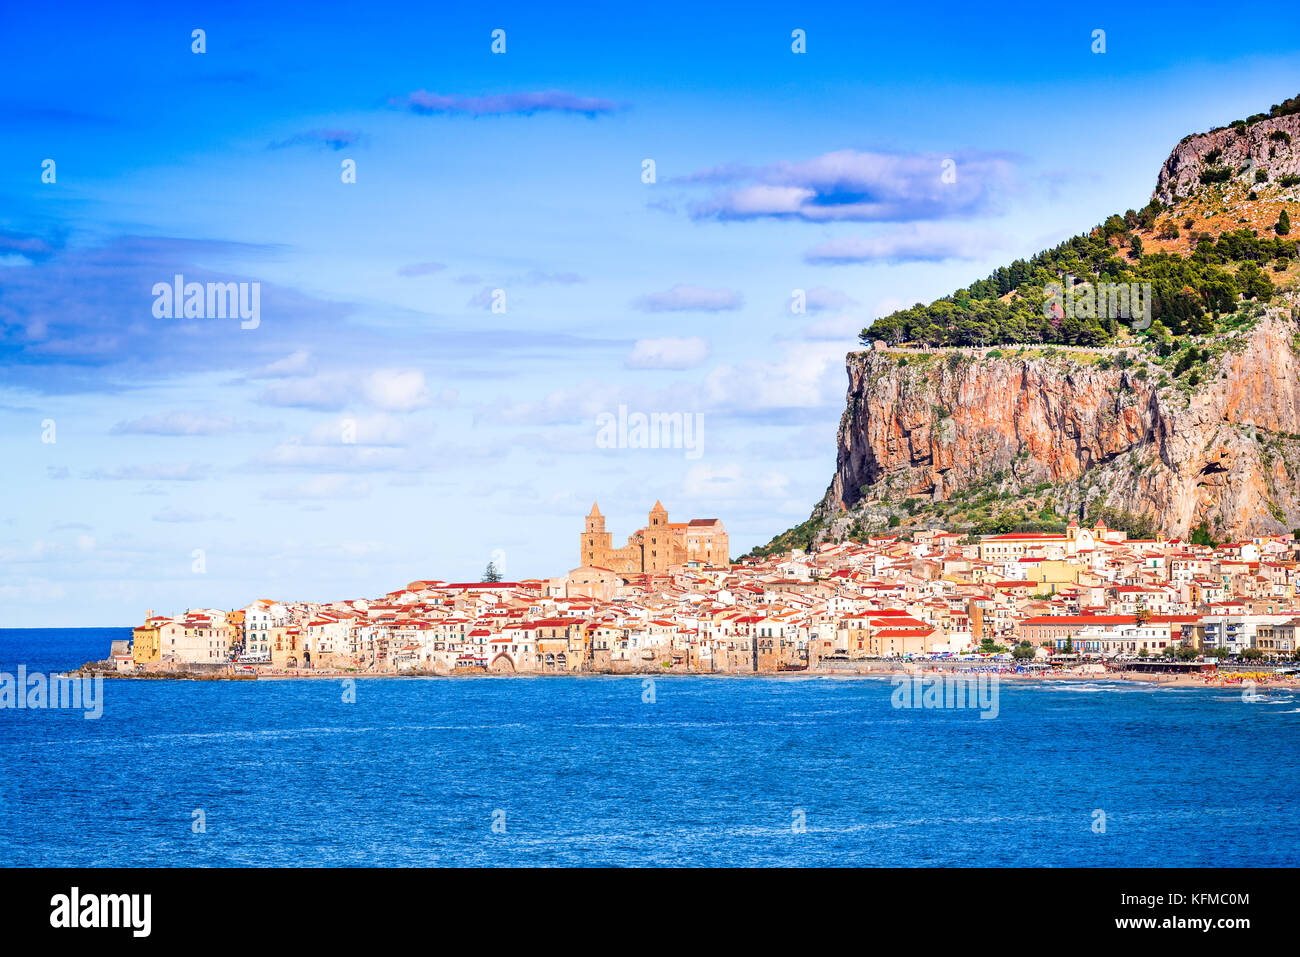 Cefalu, Sicily. Ligurian Sea and medieval sicilian city Cefalu. Province of Palermo, Italy. - Stock Image